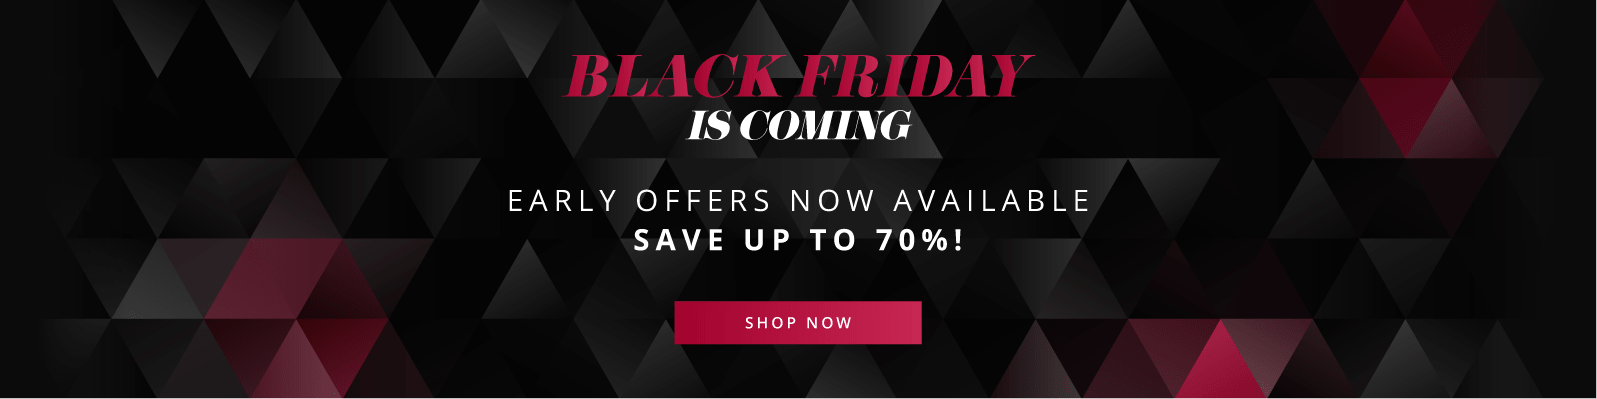 Black Friday is coming - Early offers now available - save up to 70%!